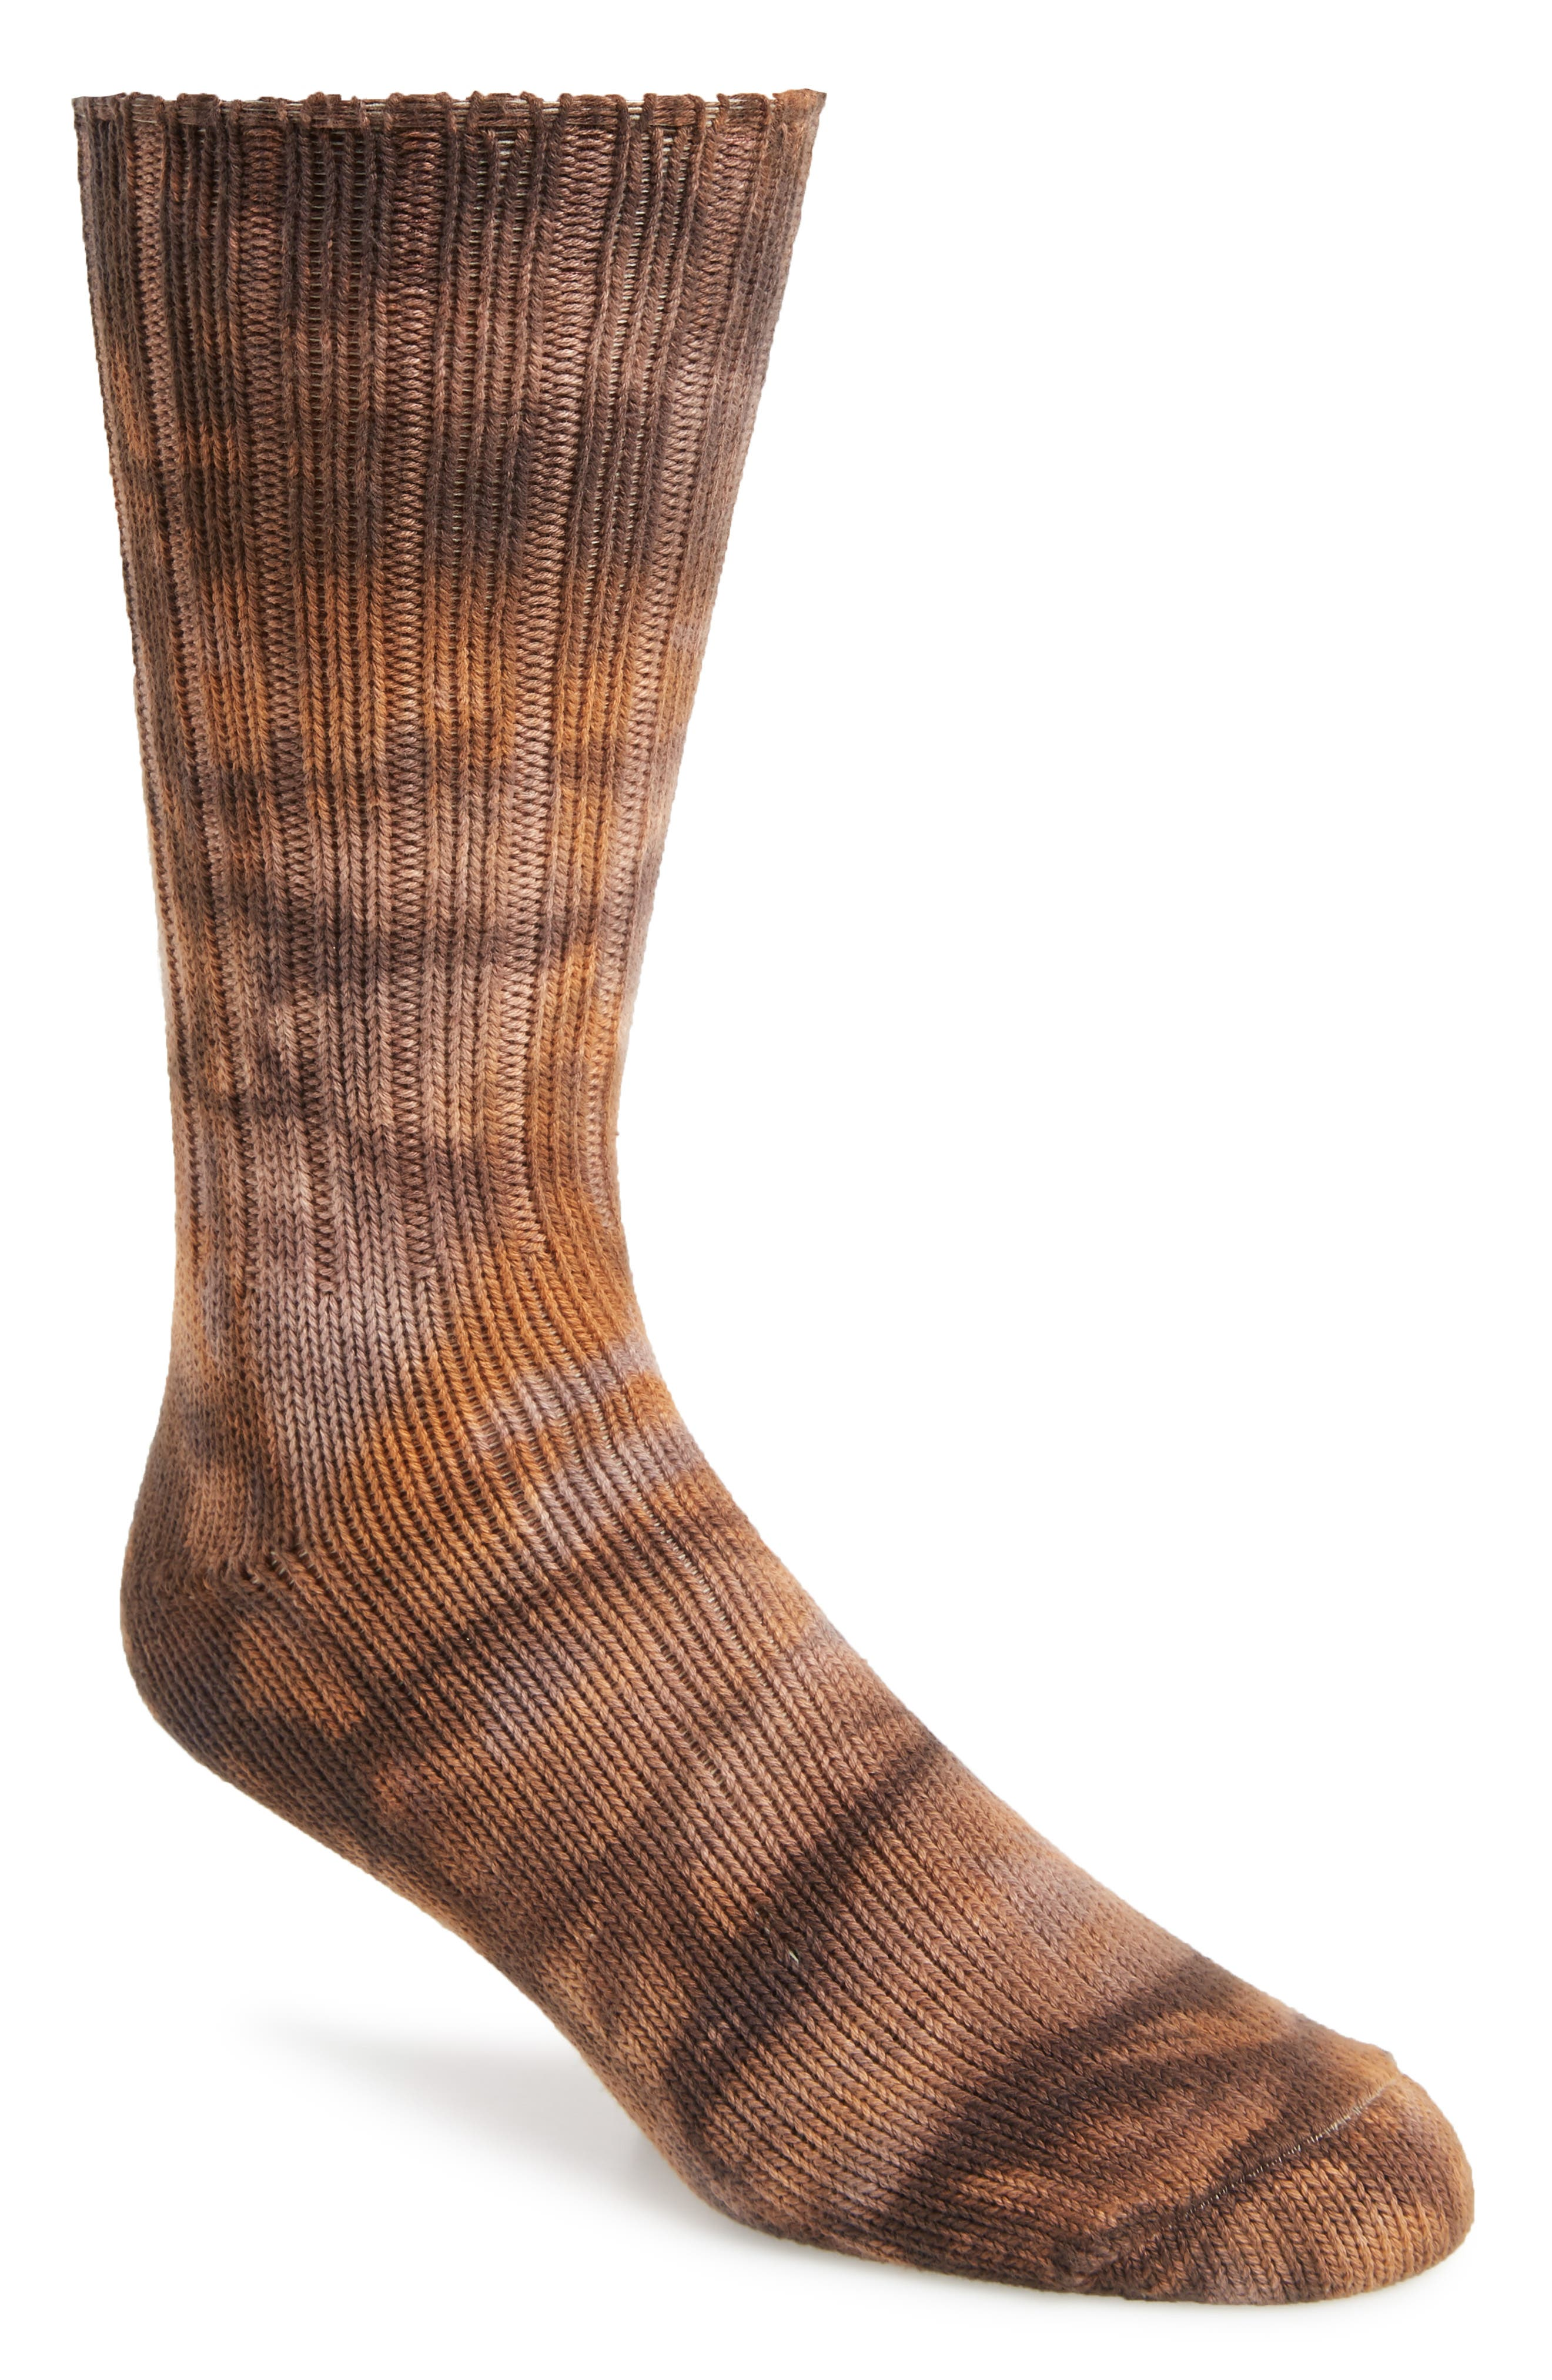 ANONYMOUS ISM Uneven Dye Socks in Brown